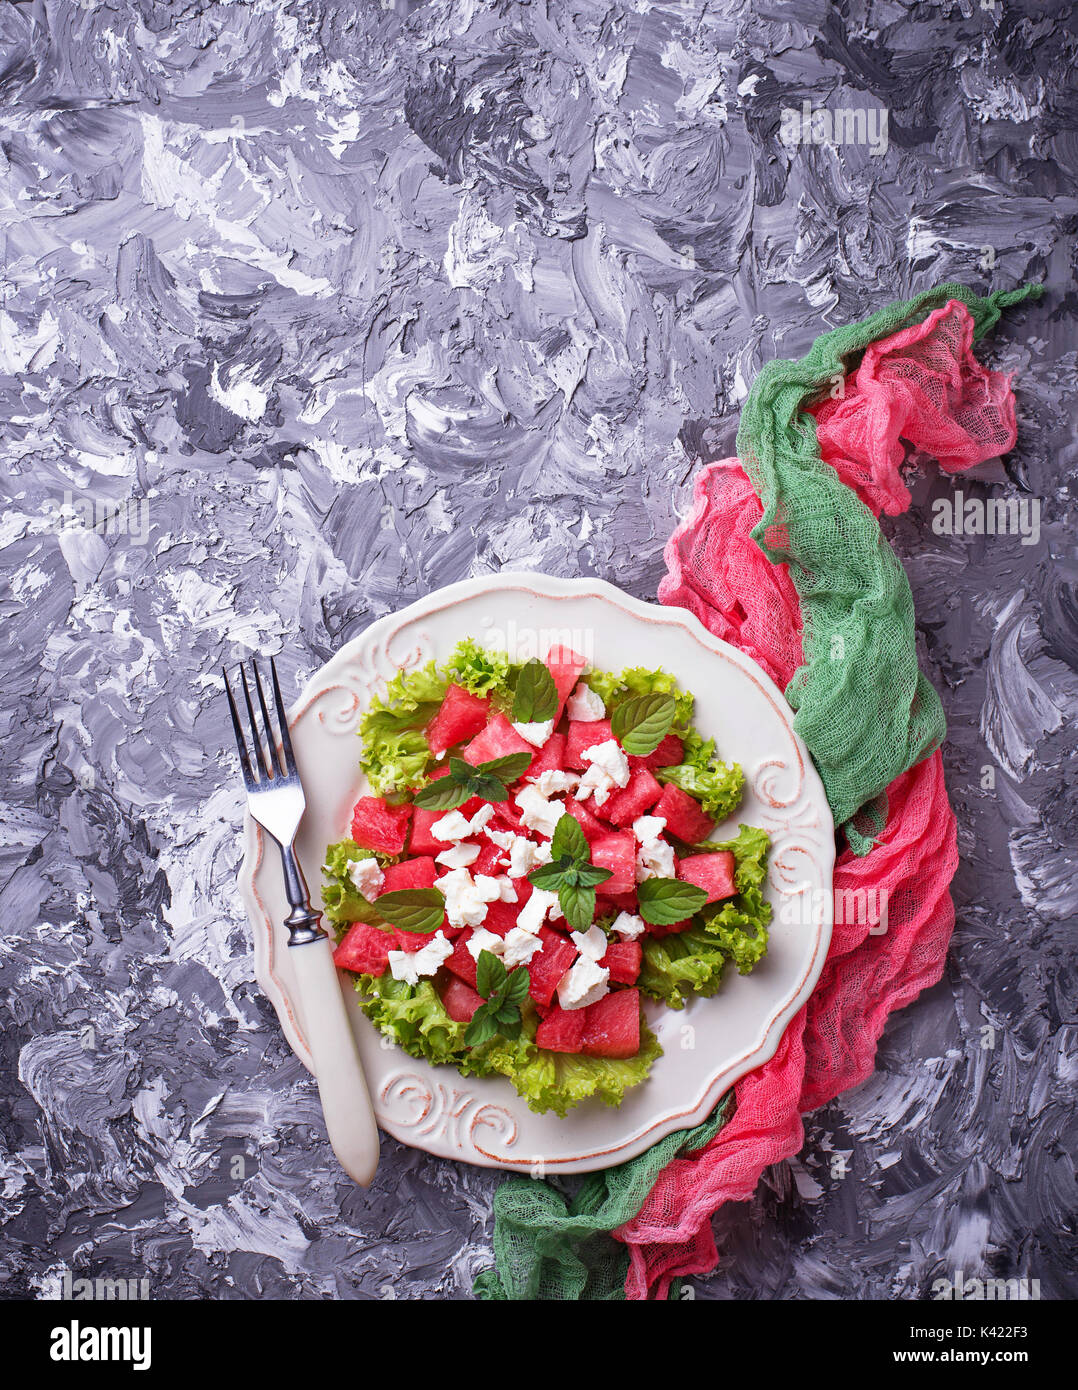 Salad with watermelon and feta cheese - Stock Image